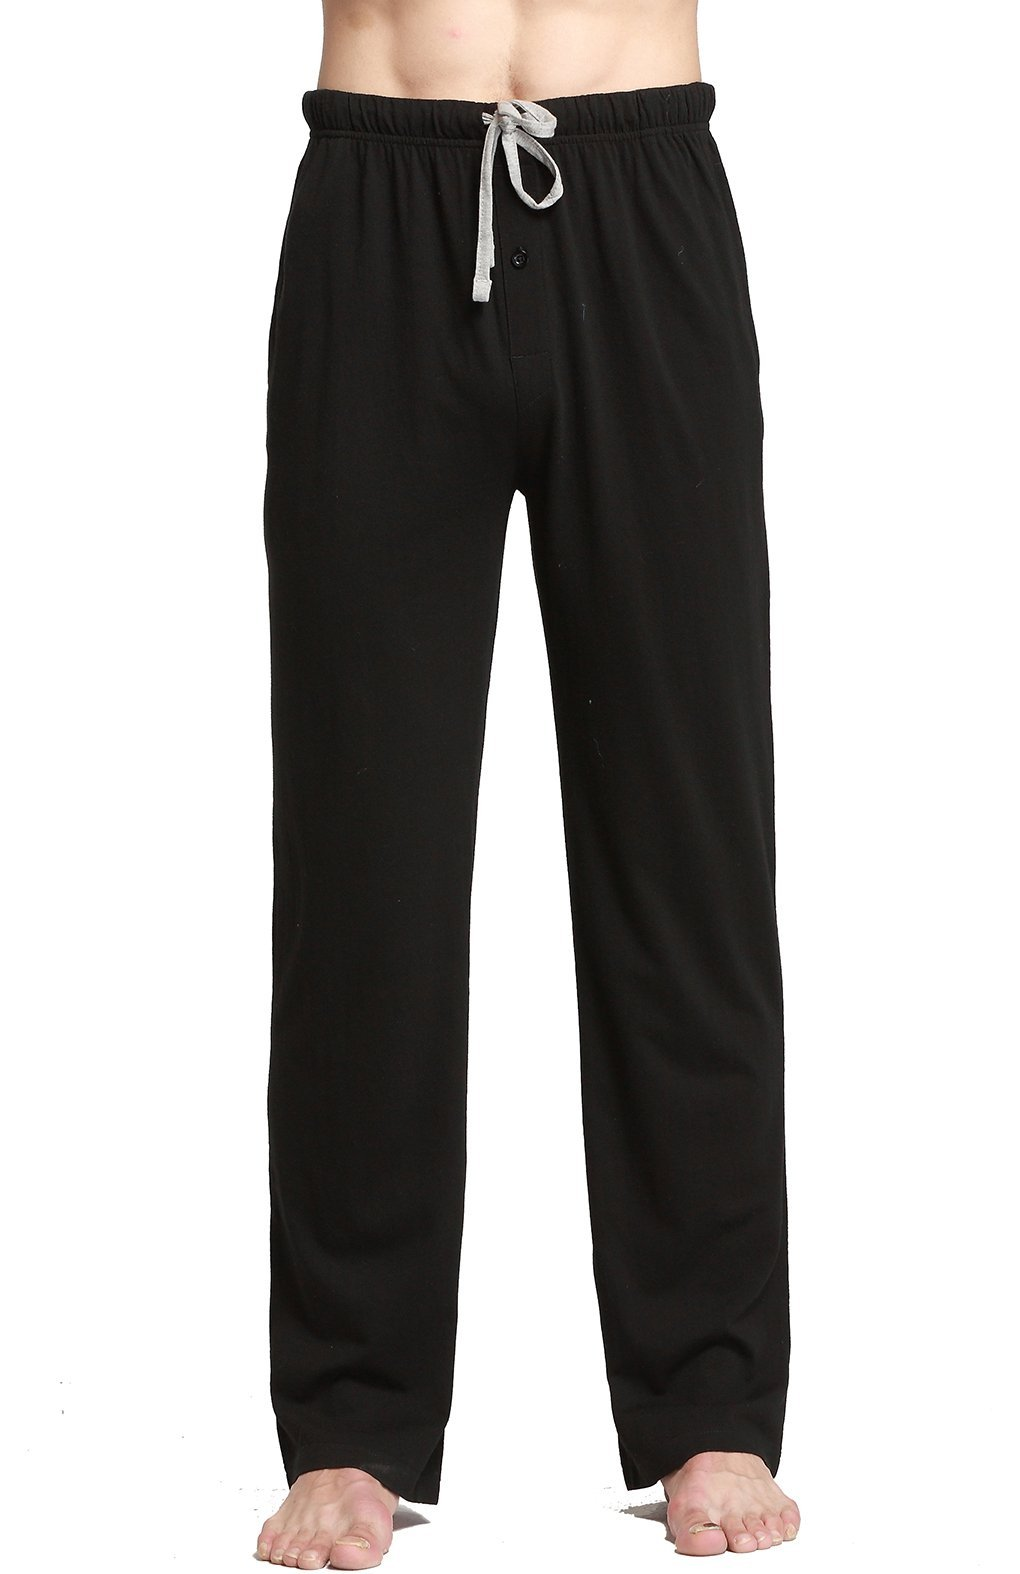 CYZ Cotton Knit Pajama Lounge Sleep Pants-Black-M by CYZ Collection